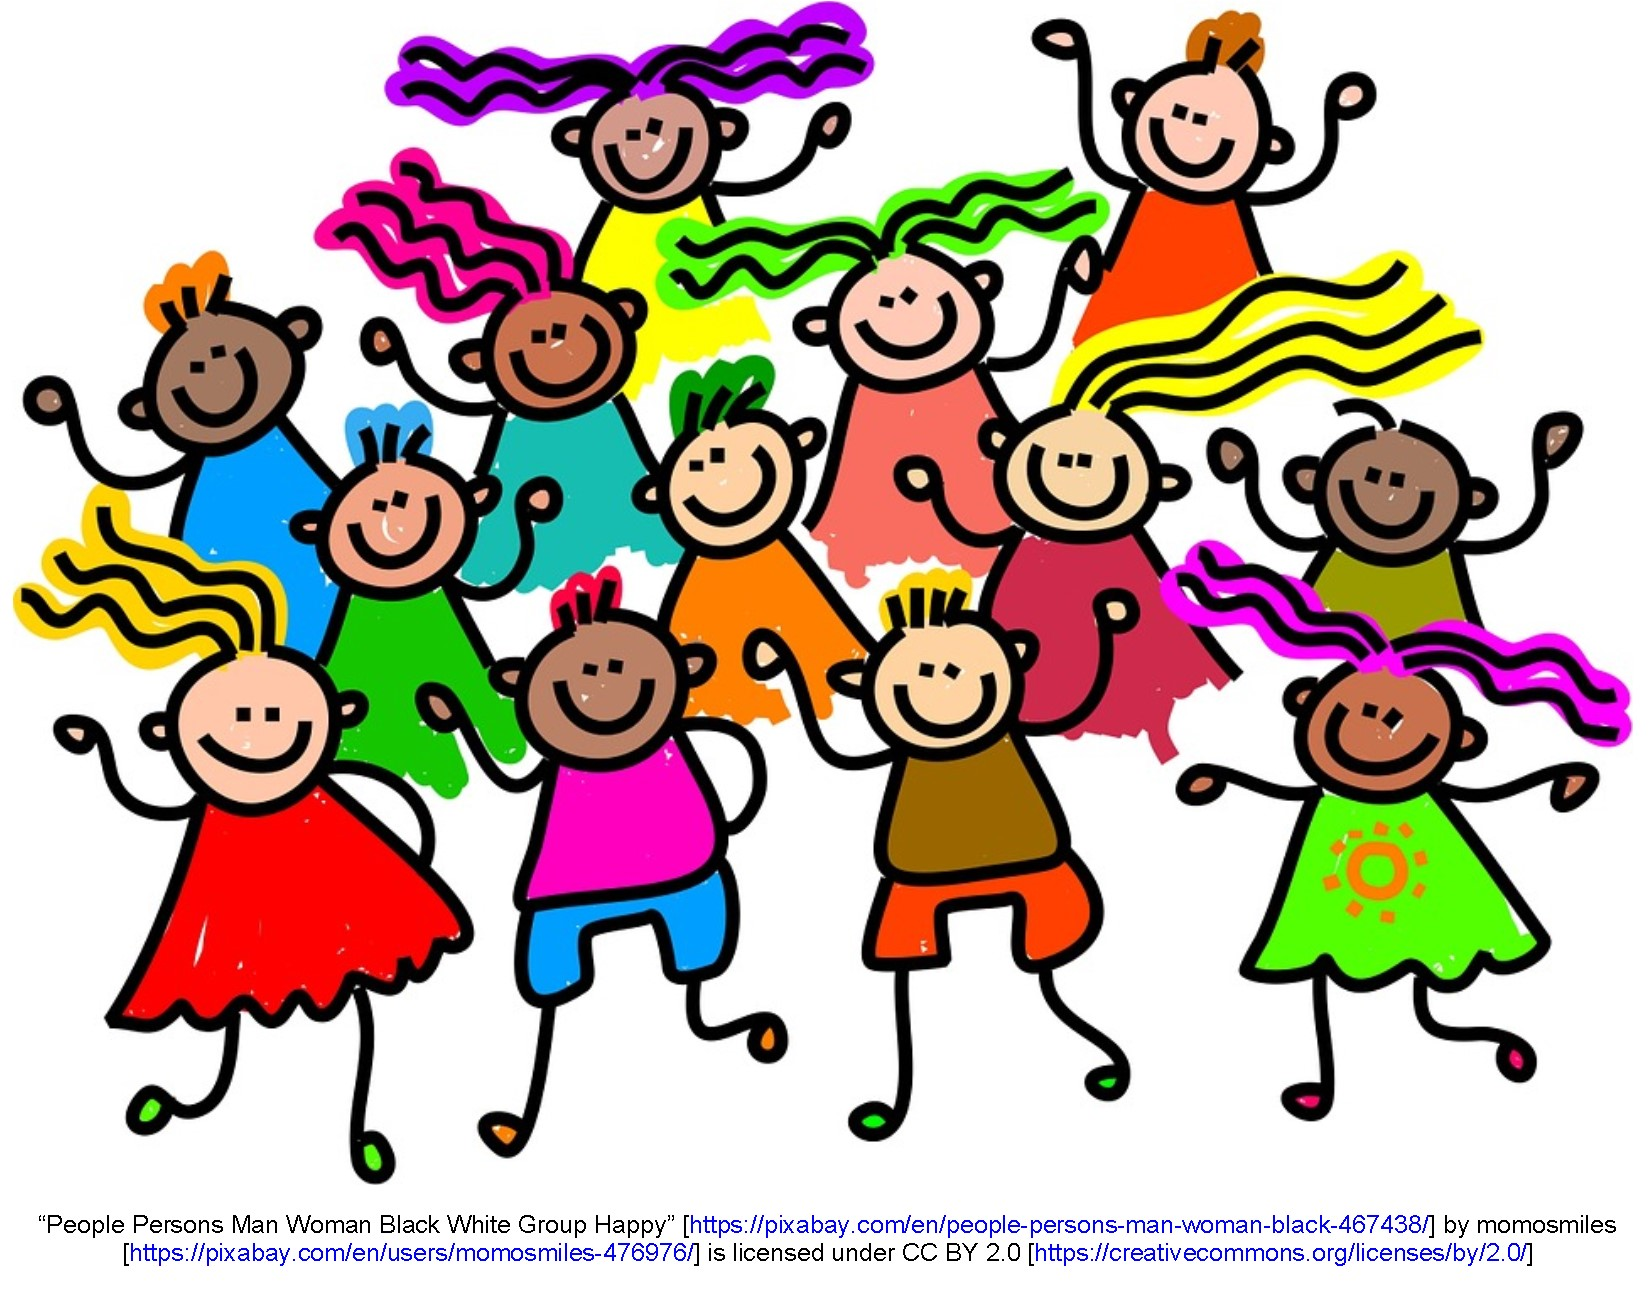 Line art picture of children dancing and waving their arms